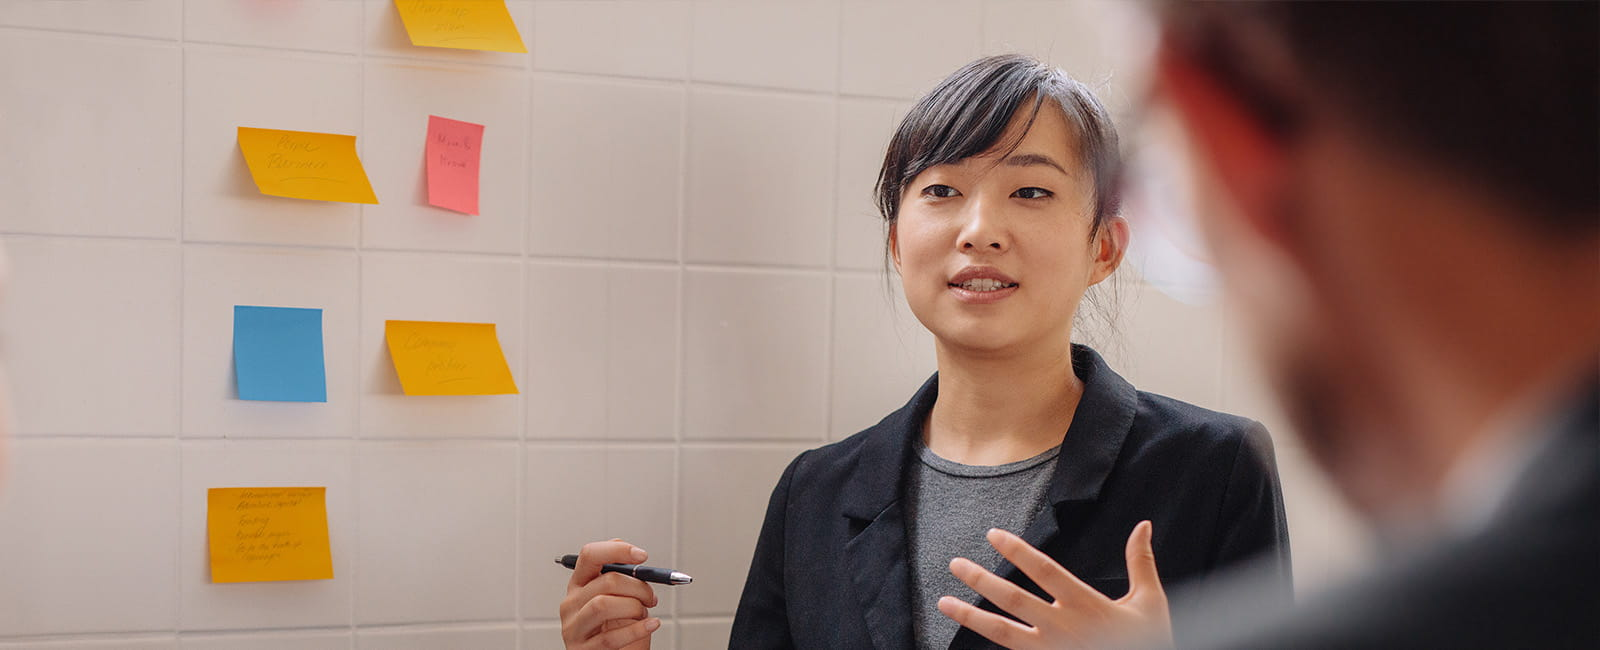 Wide shot of woman lecturing next to post-it notes with a pen in her hand